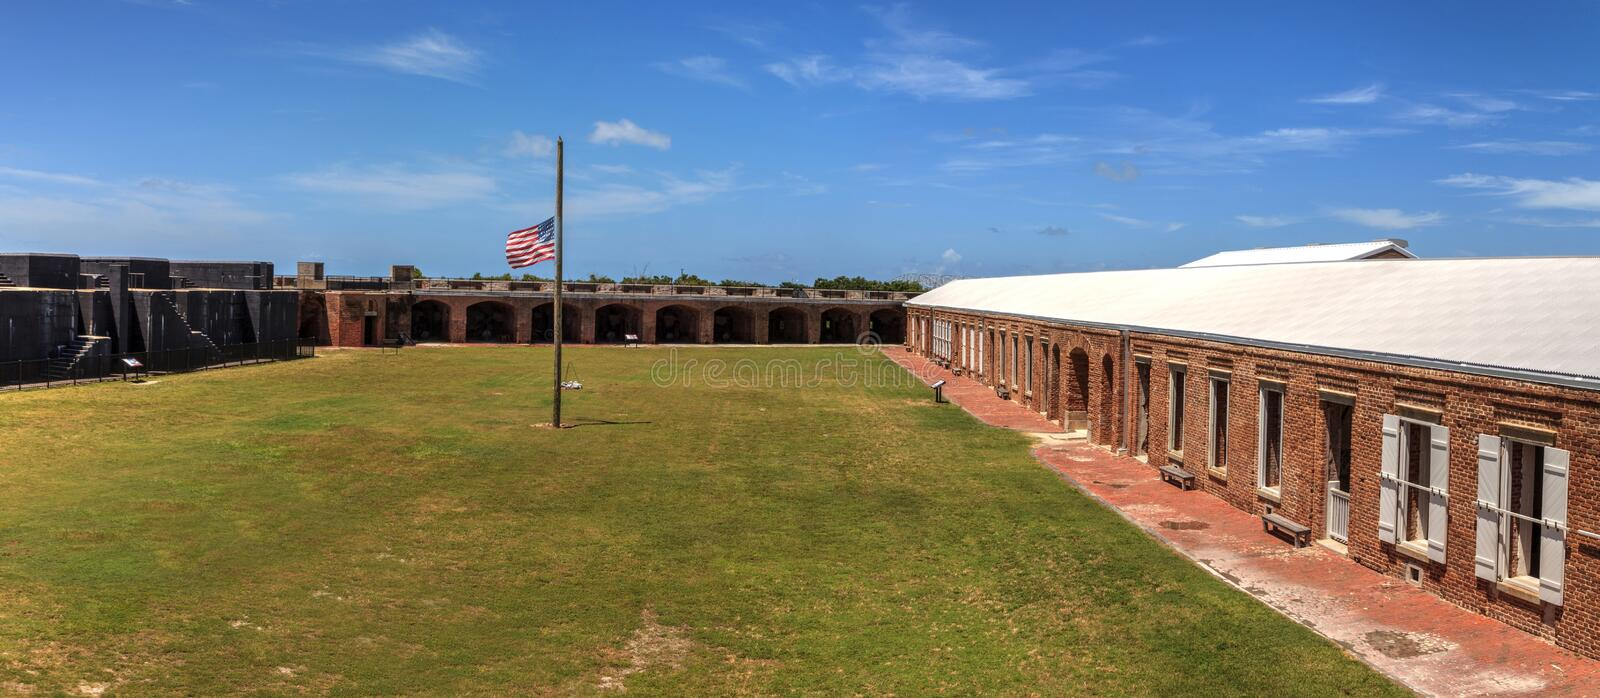 Kustlijnmening van Fort Zachary Taylor in Key West, Florida stock afbeeldingen